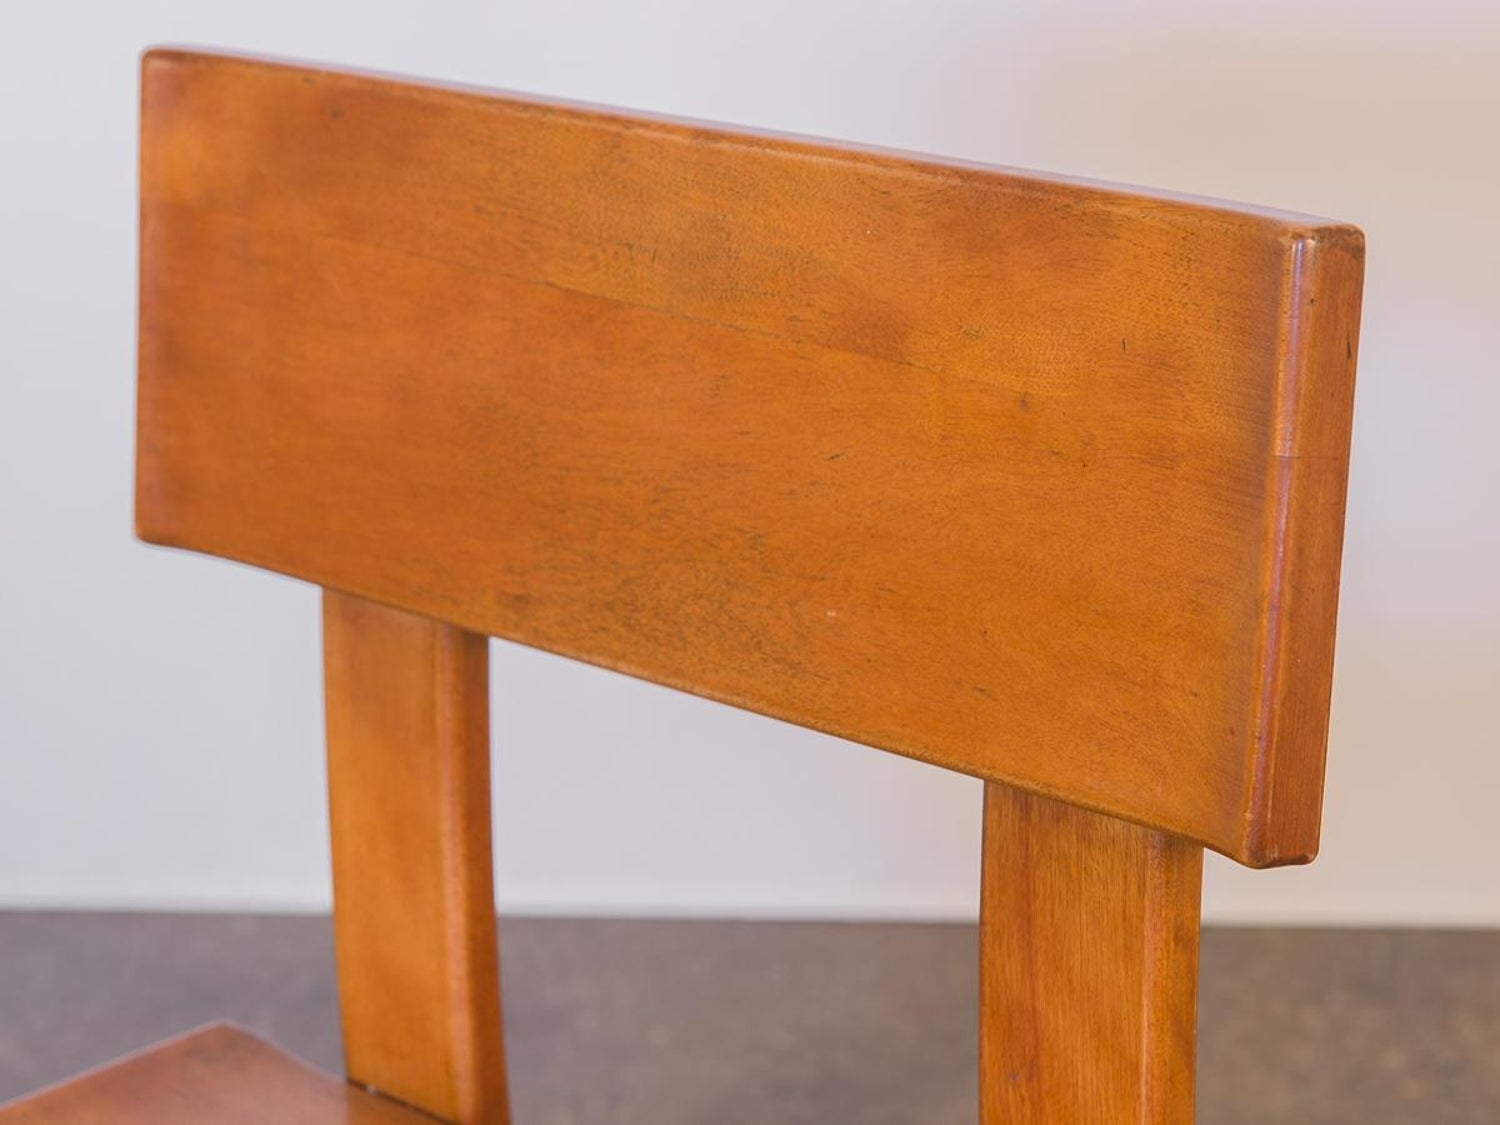 1935 russel wright american modern side chair for sale at 1stdibs